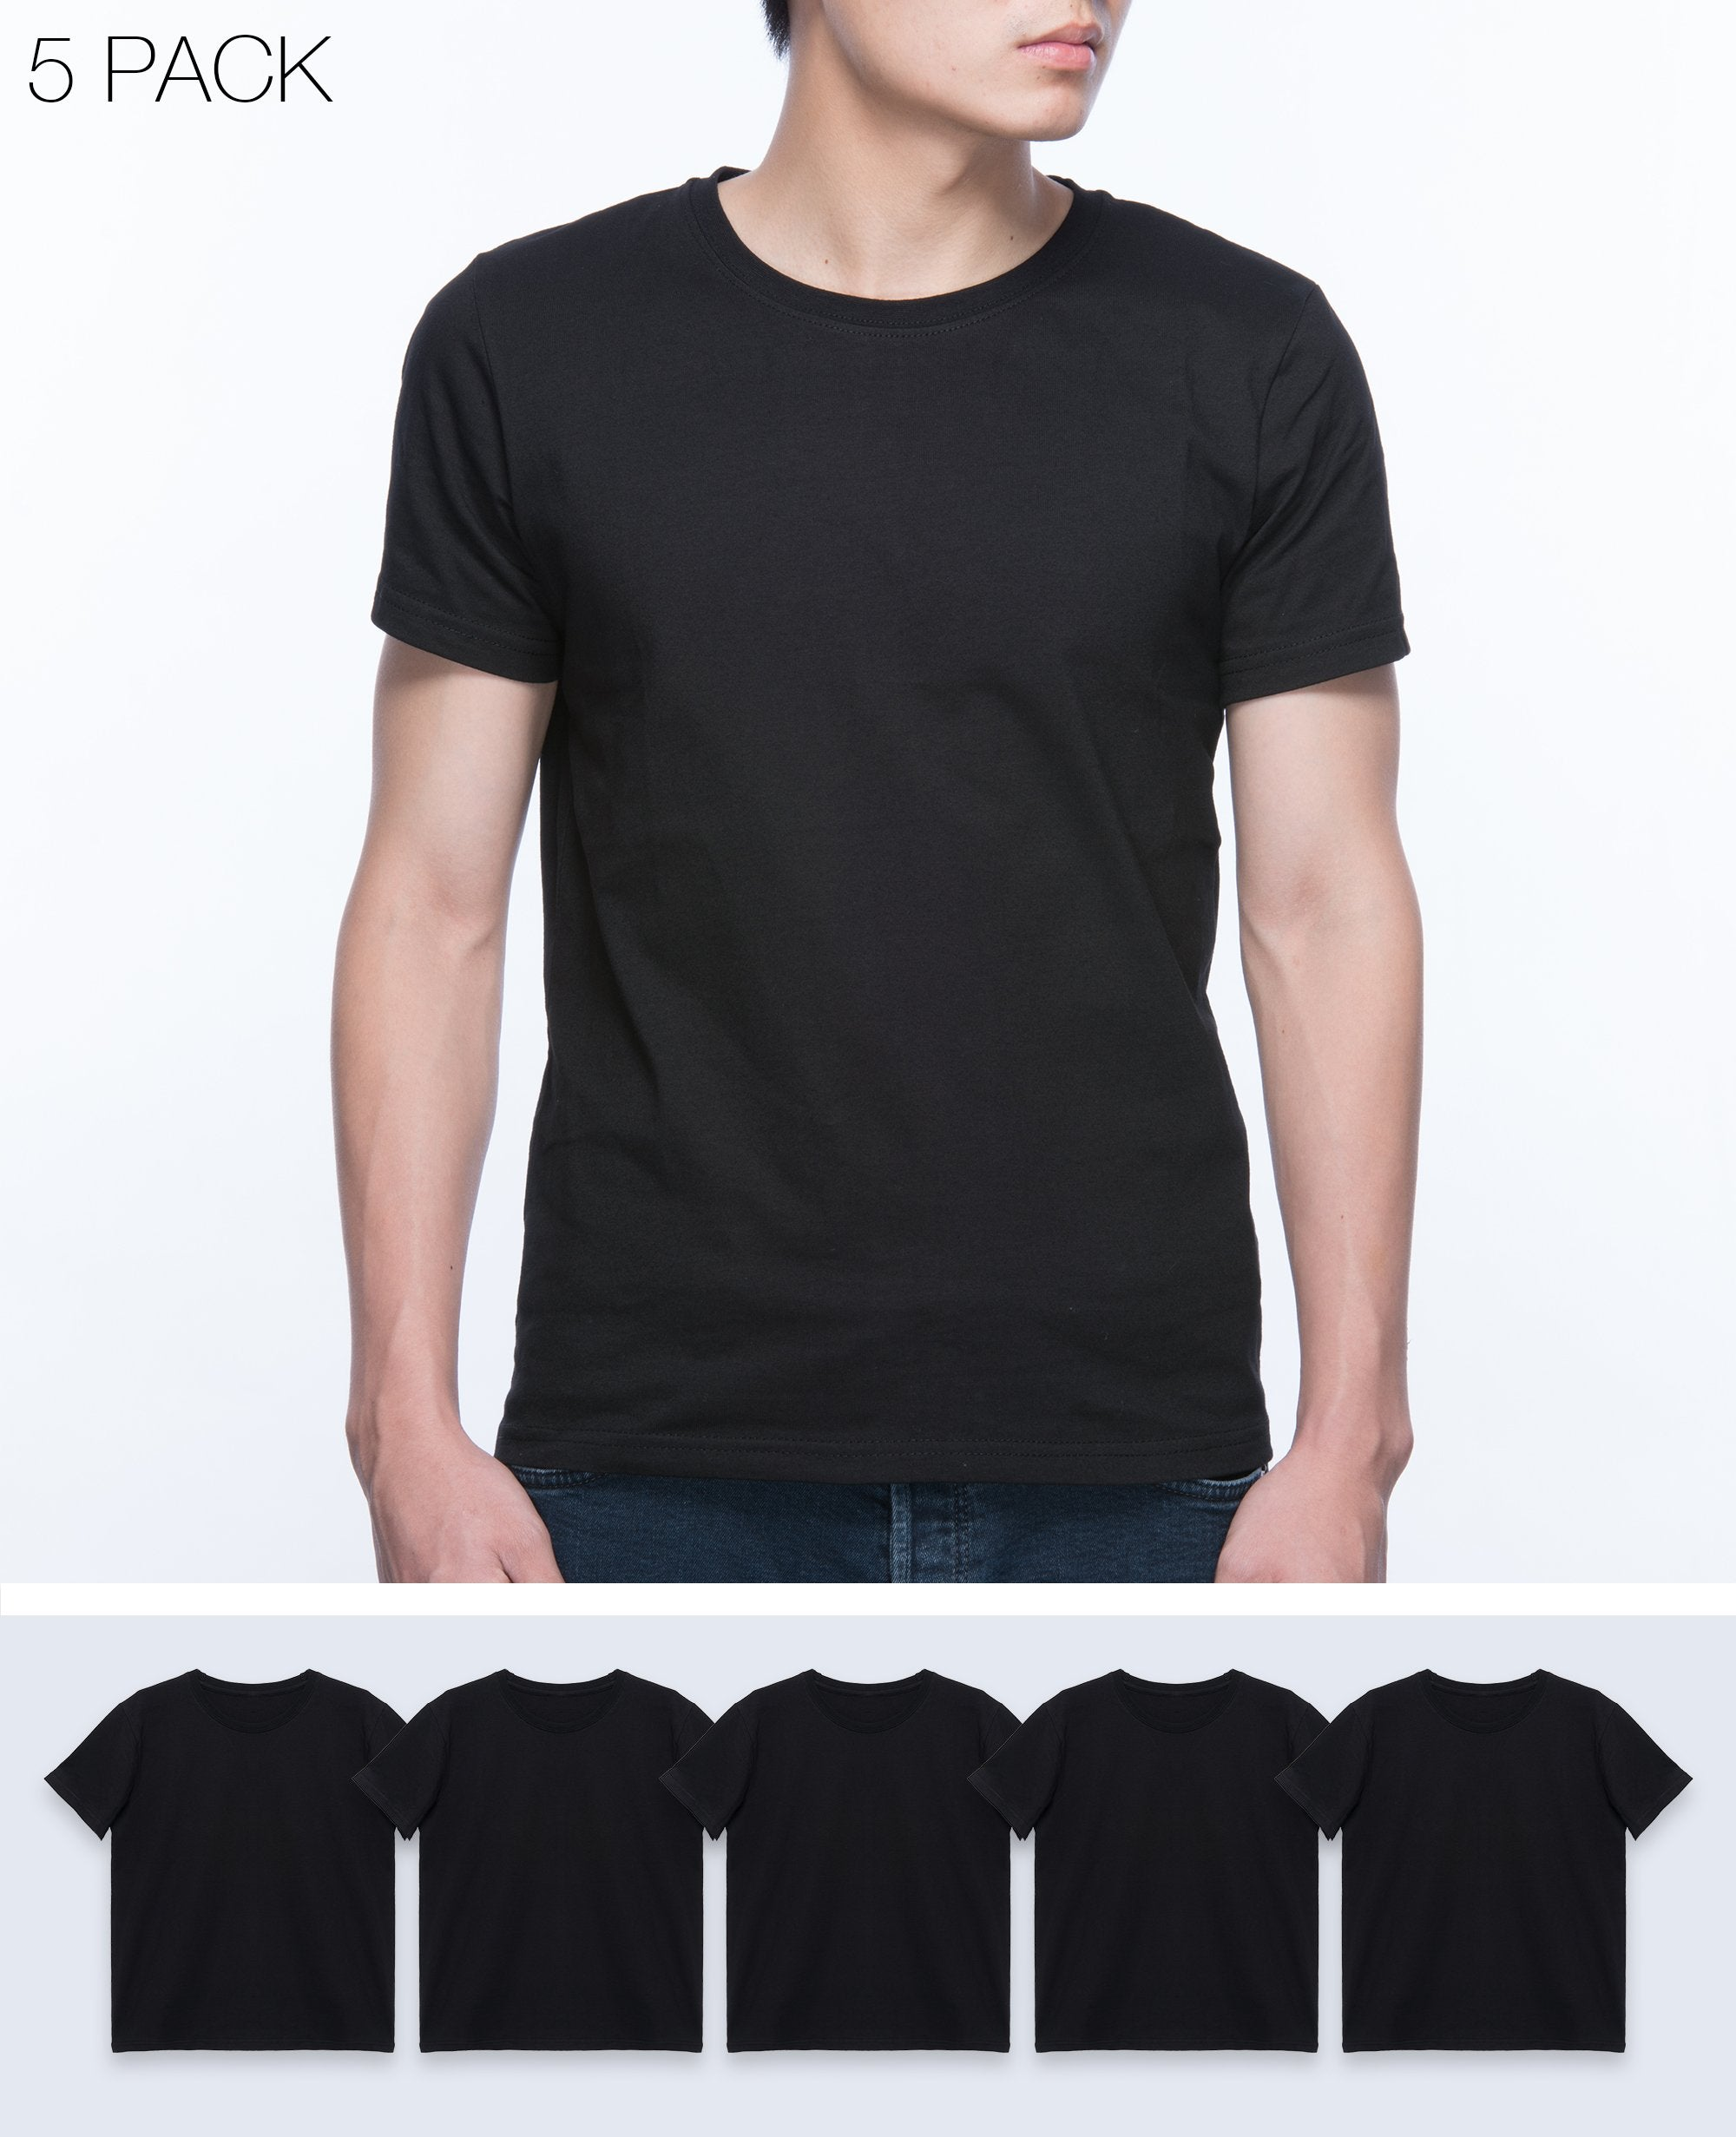 Basic T-shirt Men in Black 5 pack - T-Shirts - BRANMA - BRANMA